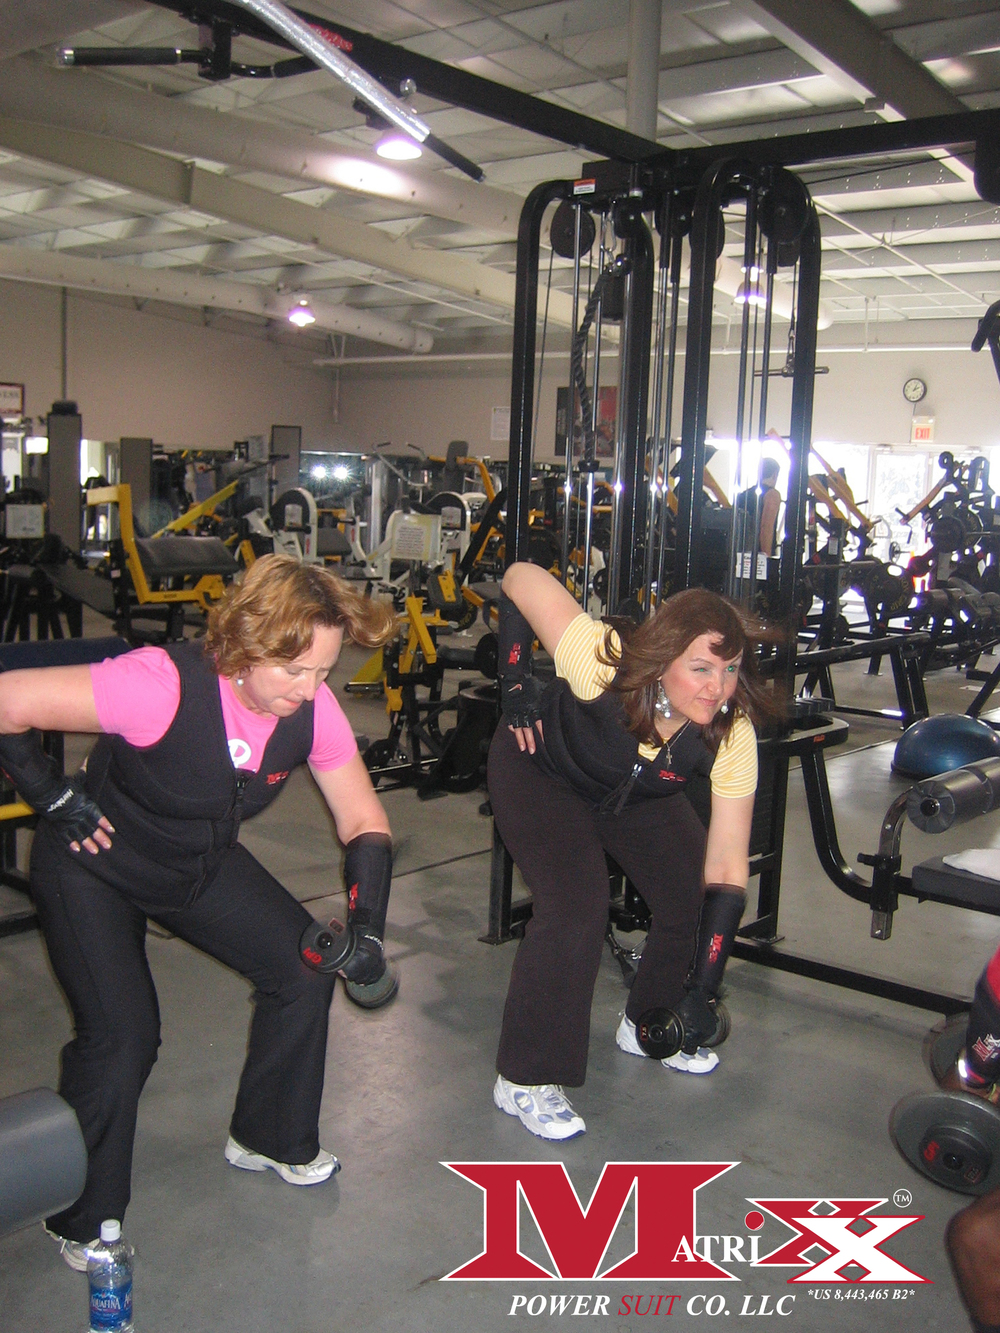 Group Personal Training in the Gym